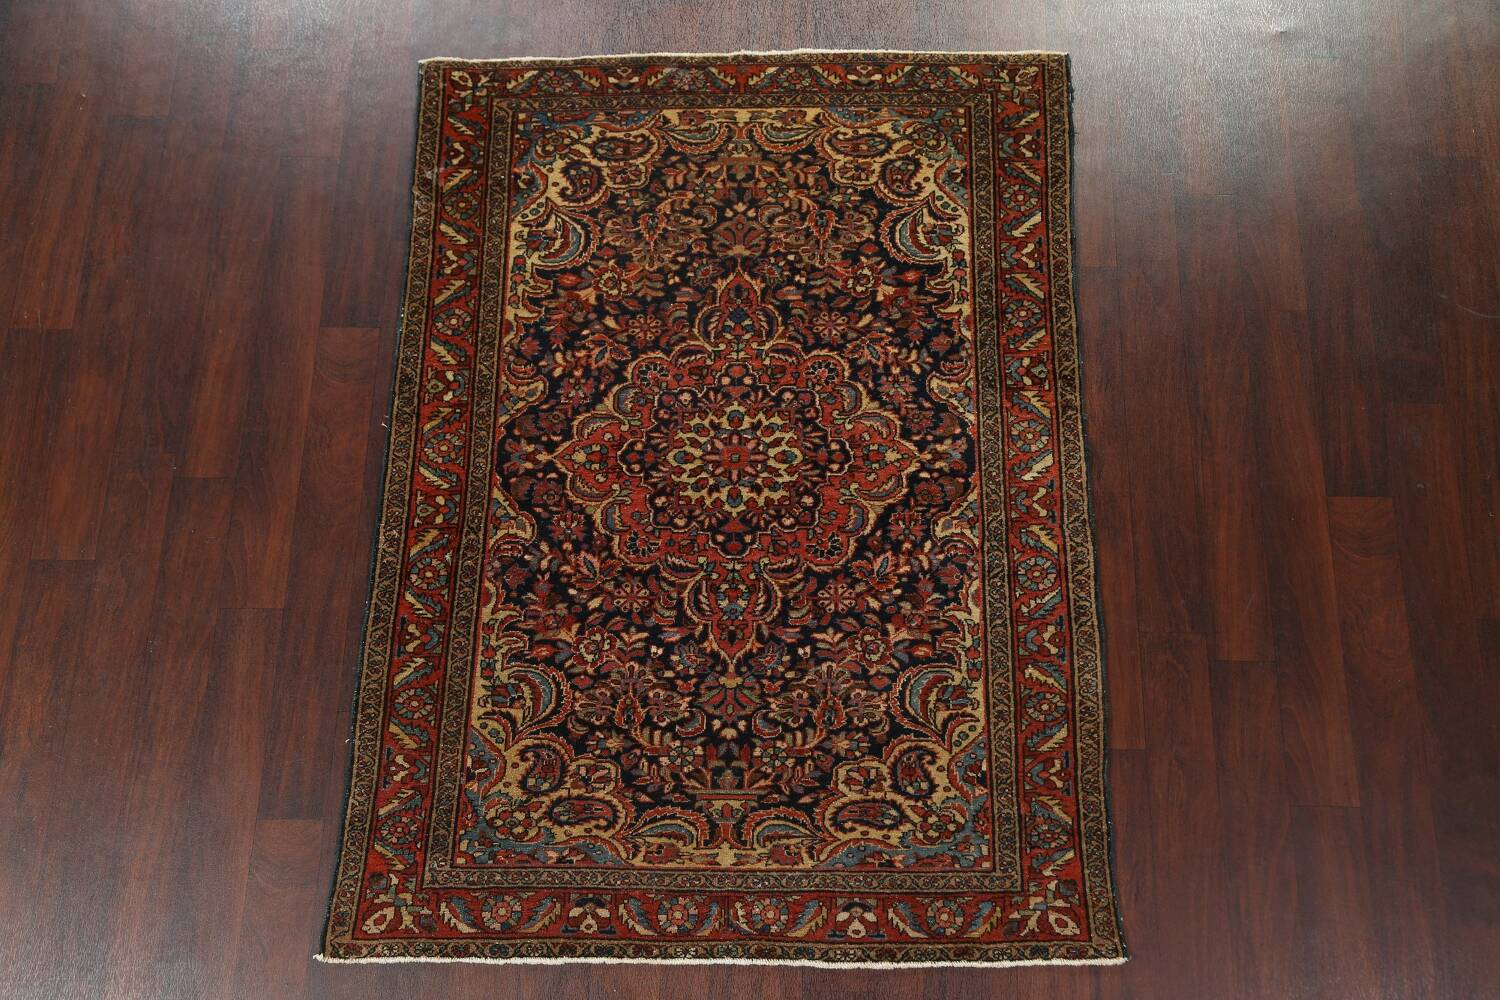 Antique Vegetable Dye Malayer Persian Area Rug 5x6 image 13